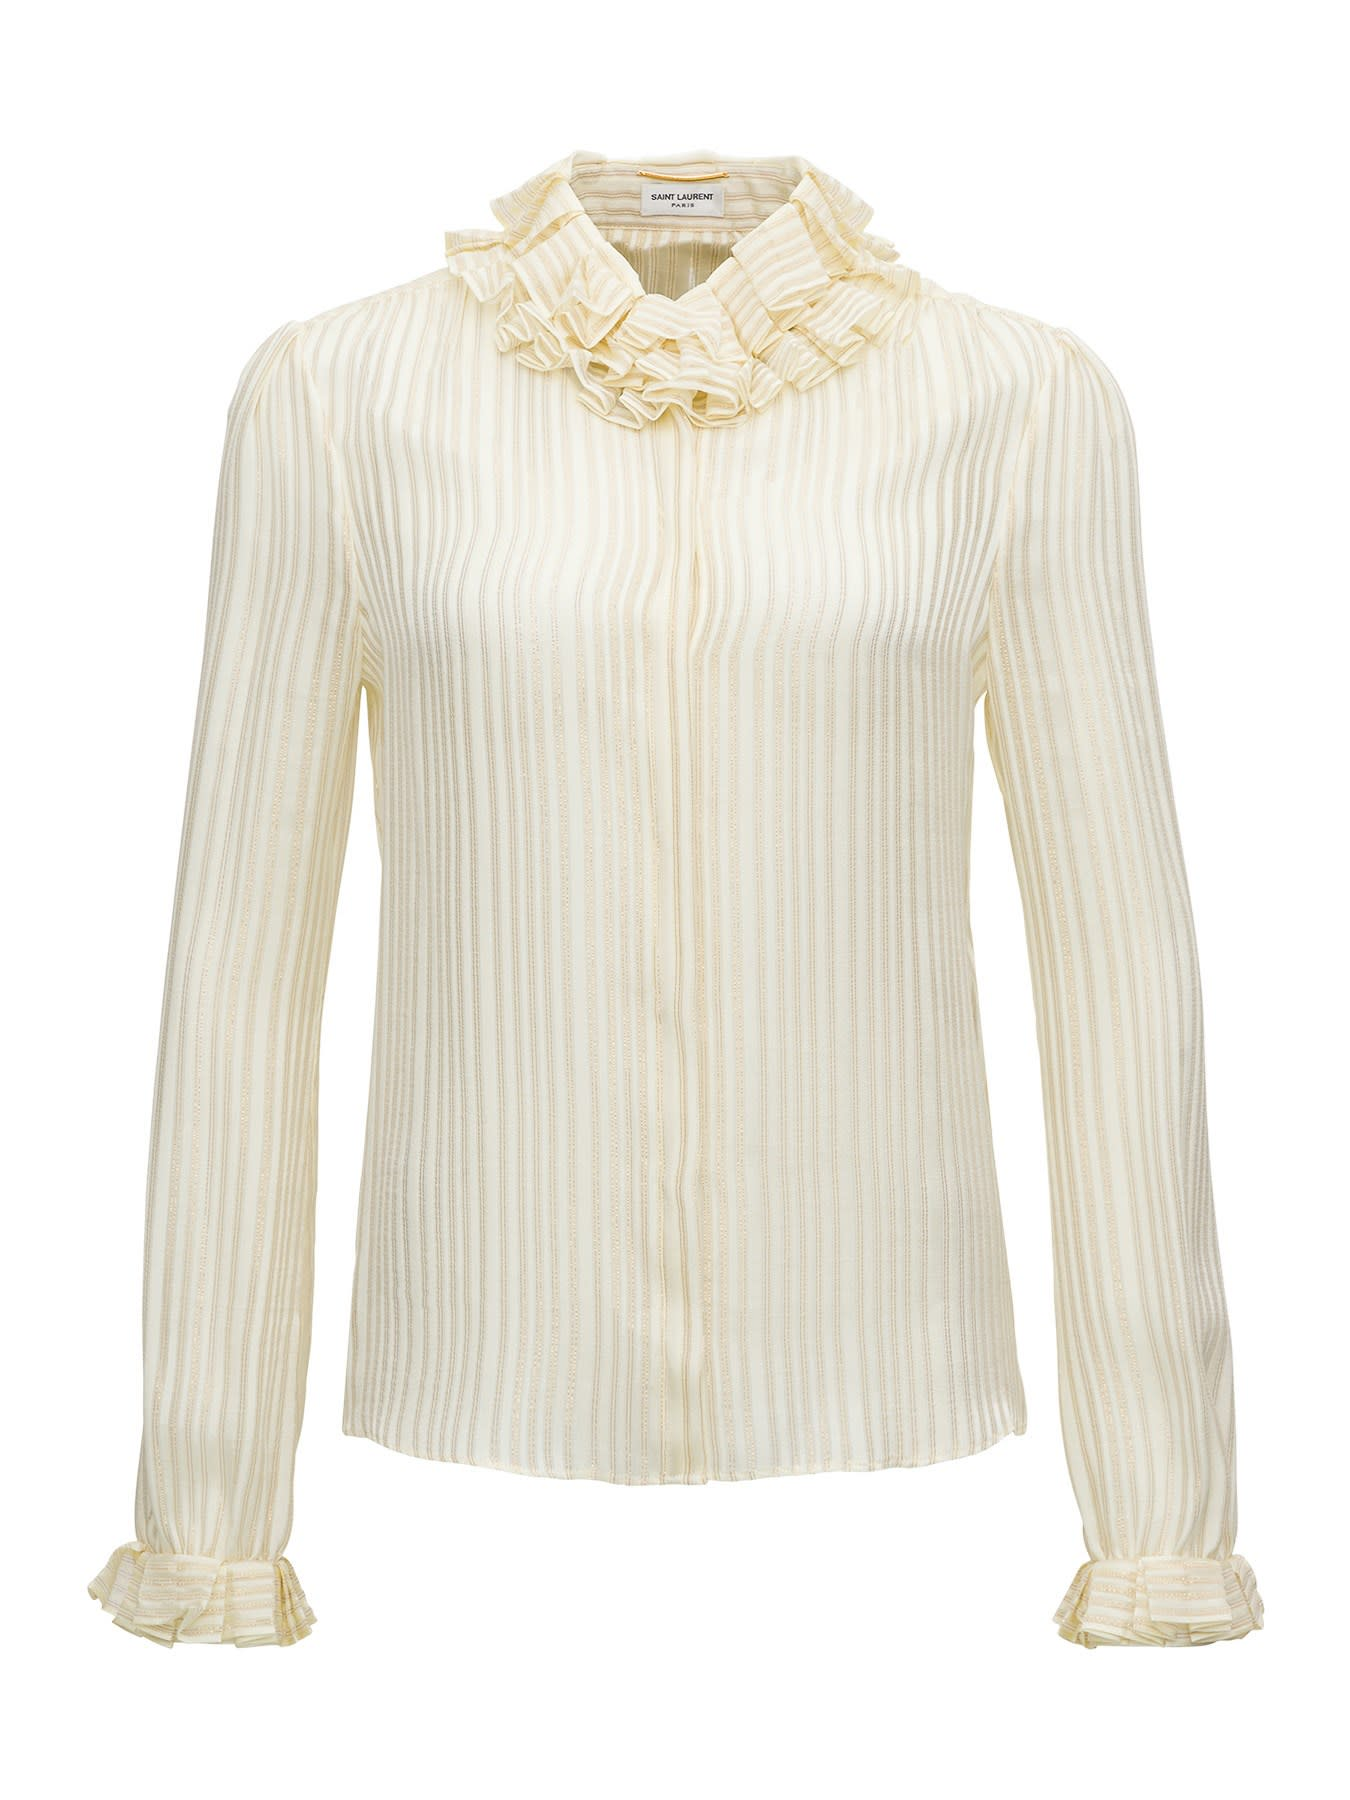 Saint Laurent Striped Blouse With Stripes And Frills